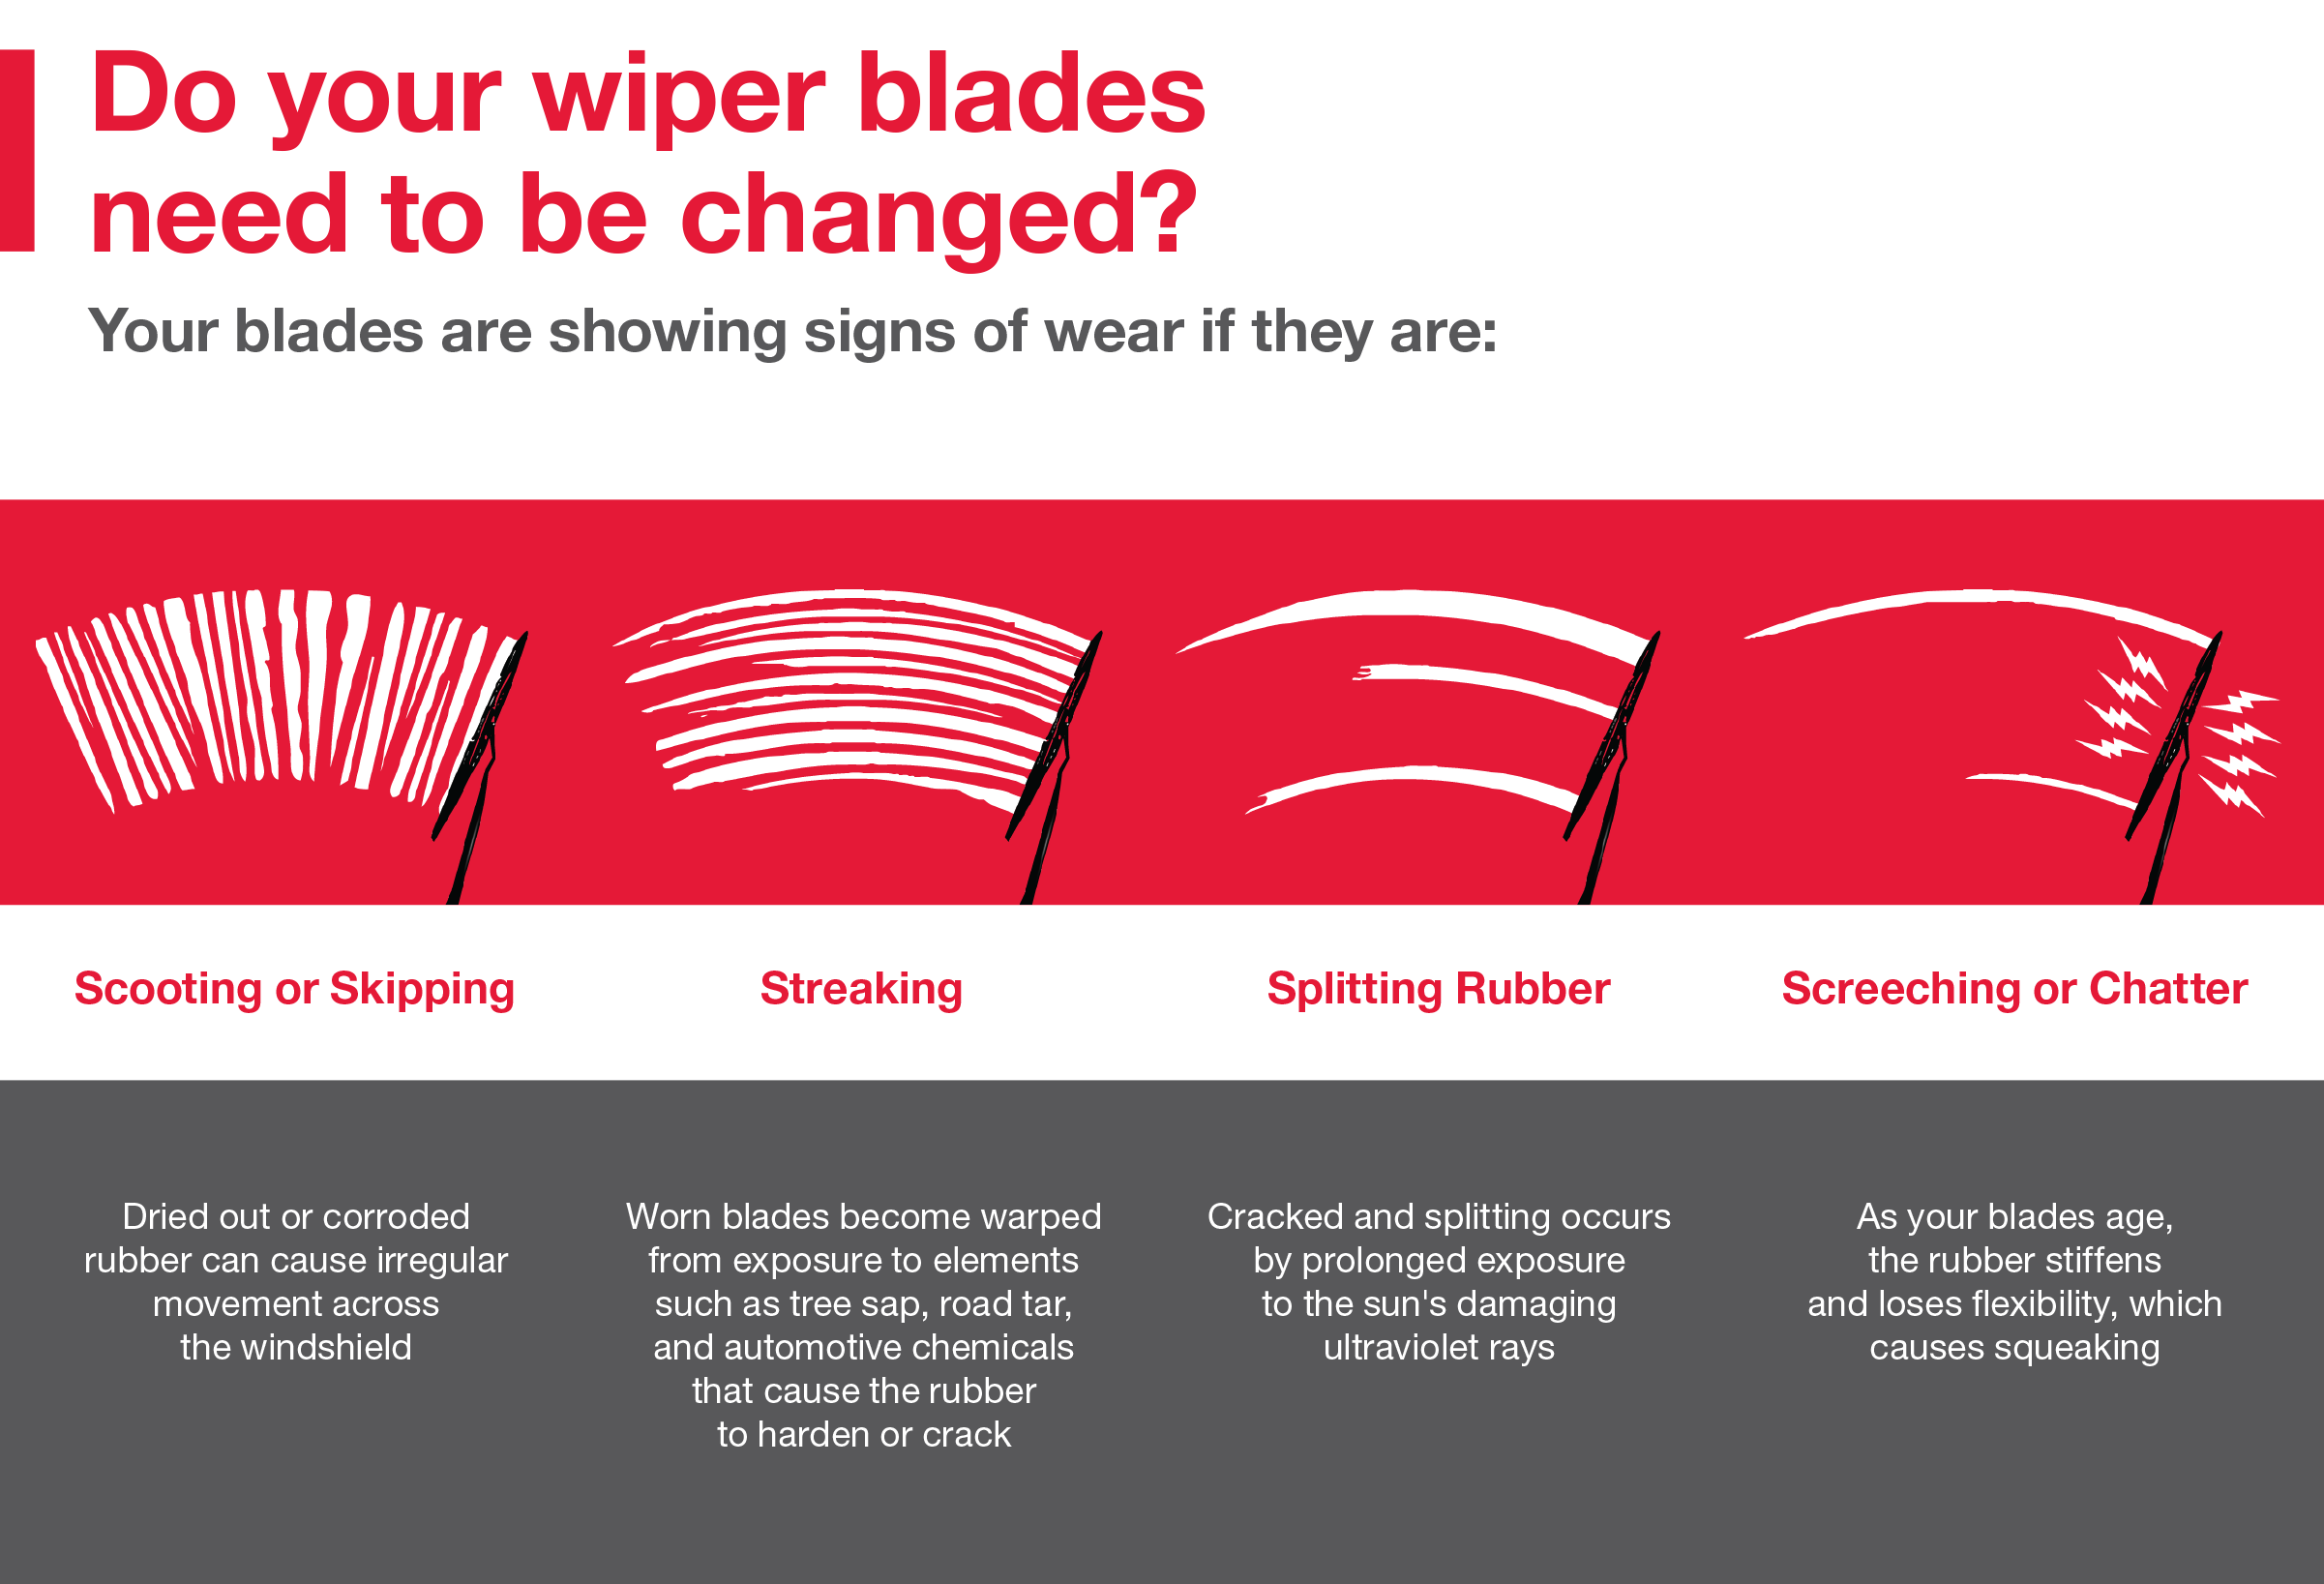 Do your wiper blades need to be changed? Call your local dealer for more info: 800-971-5896